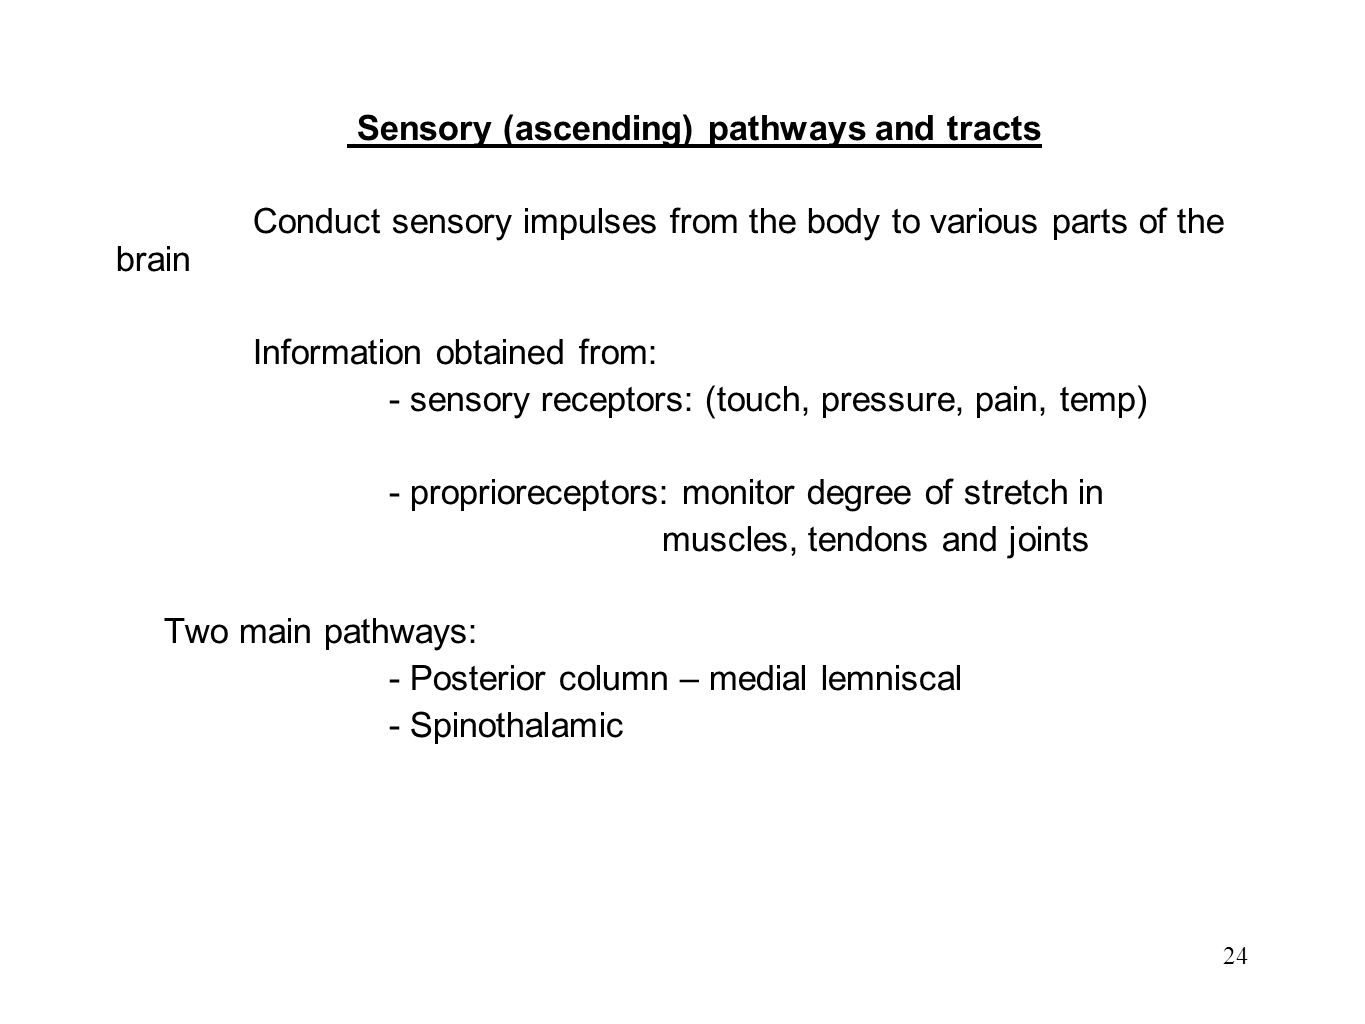 Sensory (ascending) pathways and tracts